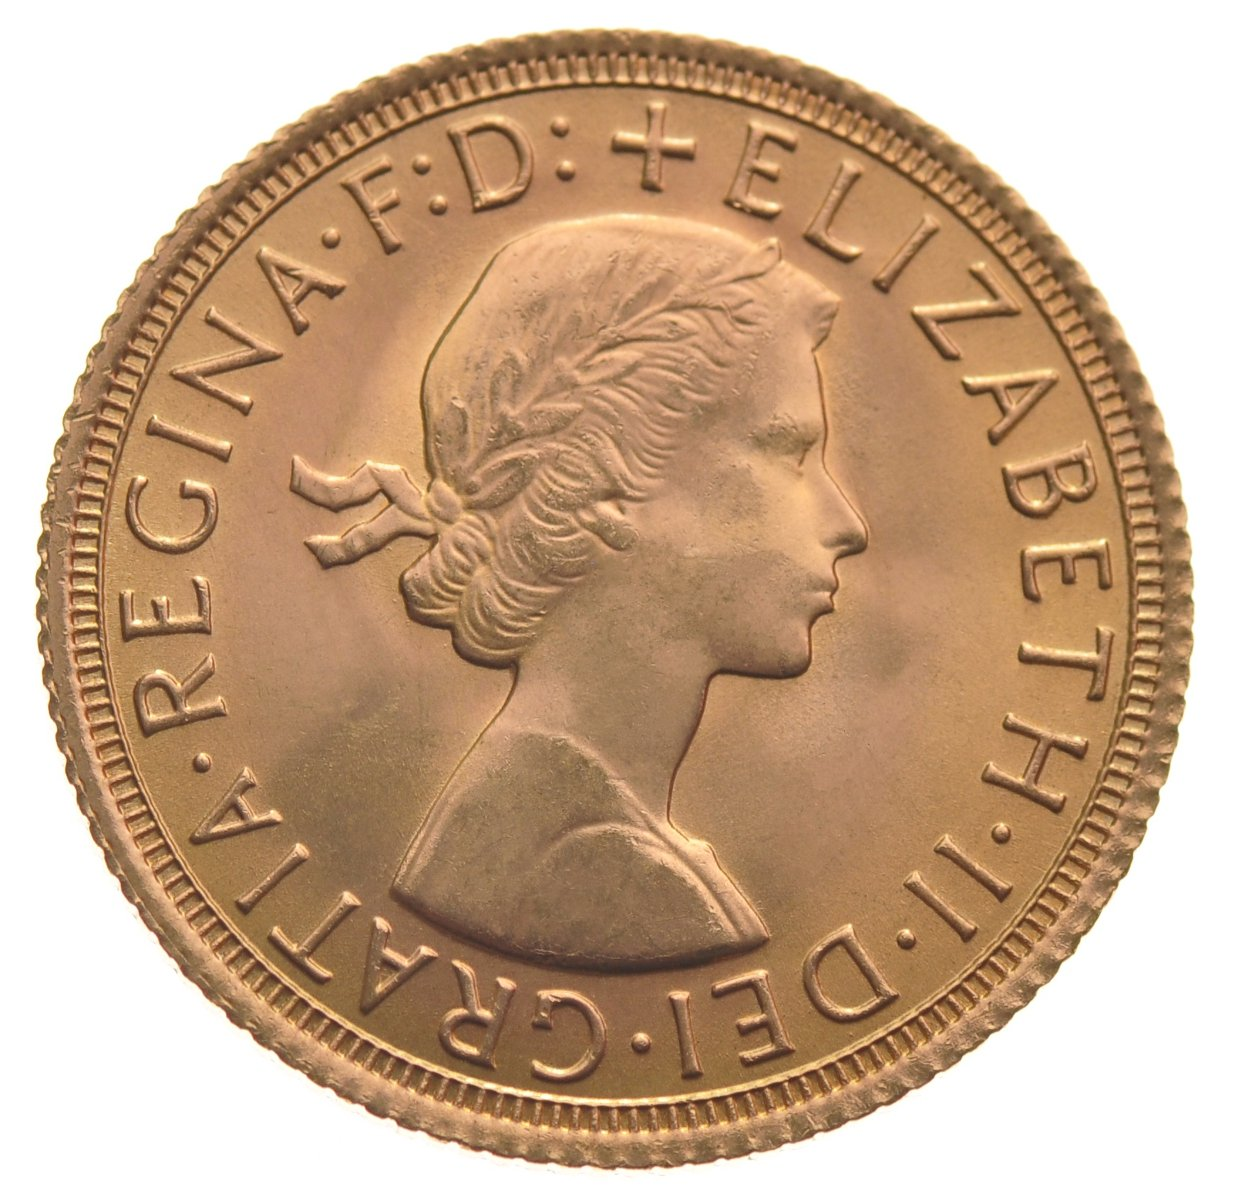 1964 Gold Sovereign Elizabeth Ii Young Head 163 286